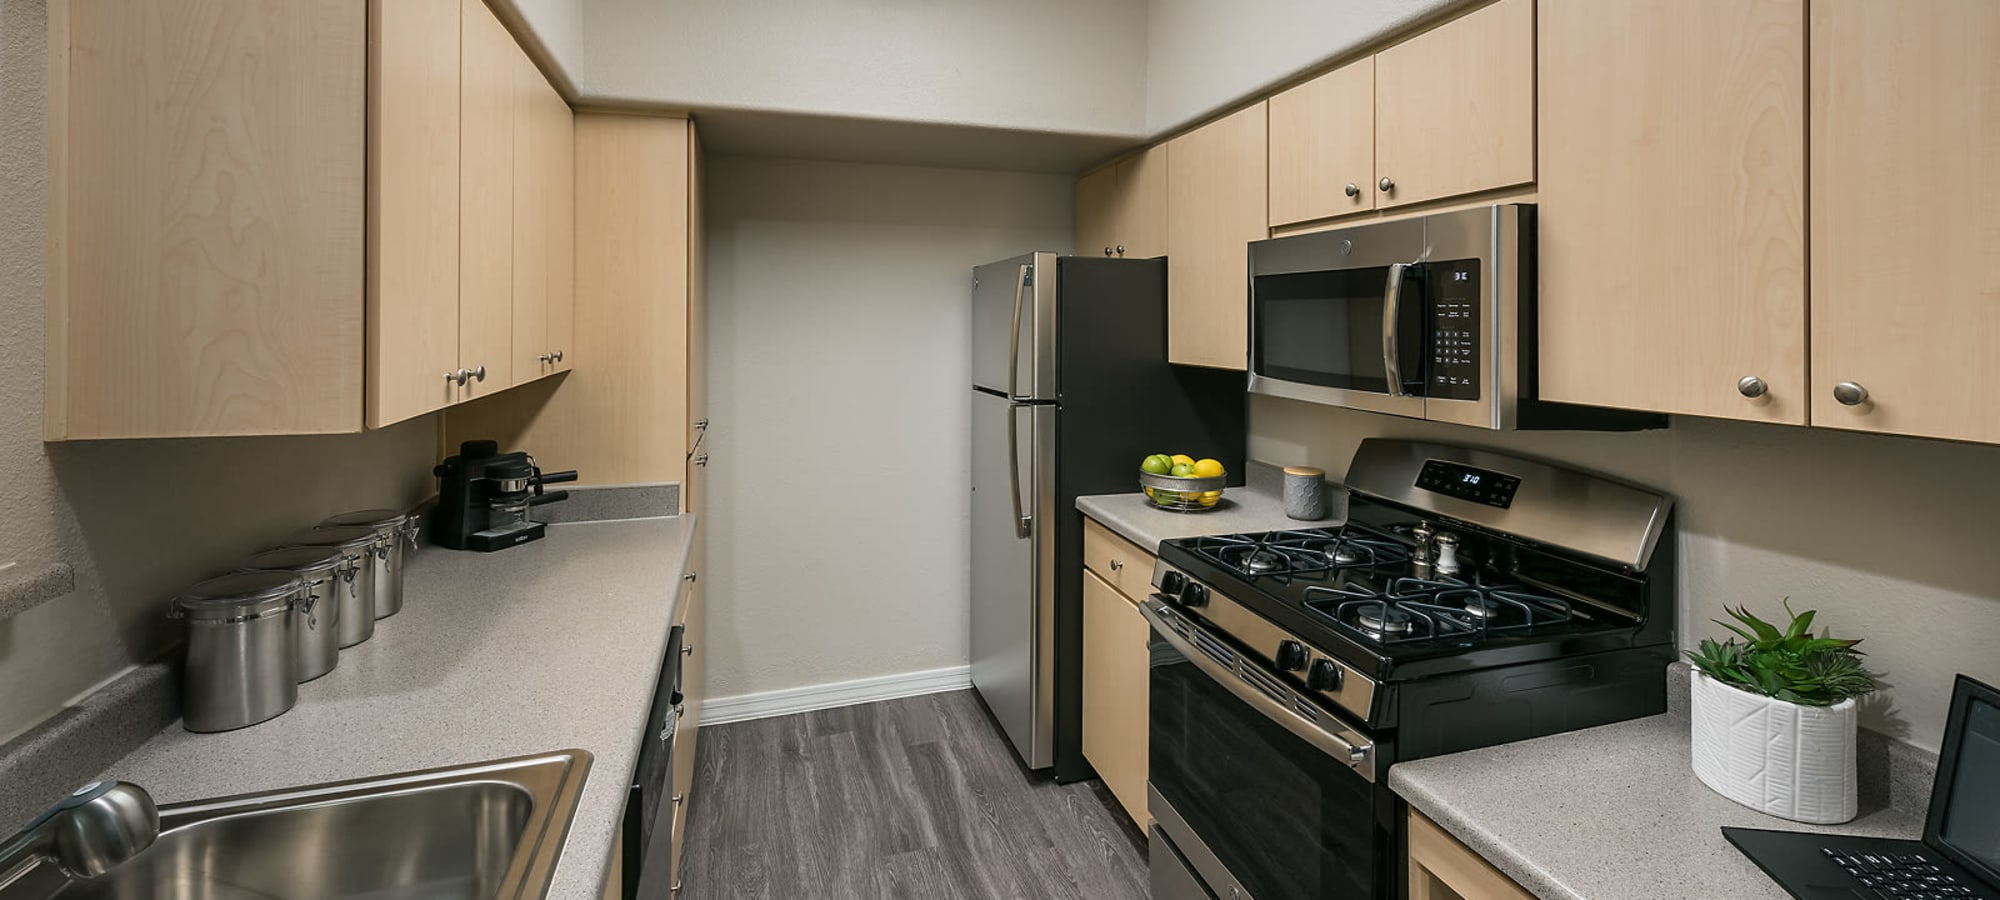 upgraded kitchen with appliances at Laguna at Arrowhead Ranch in Glendale, Arizona